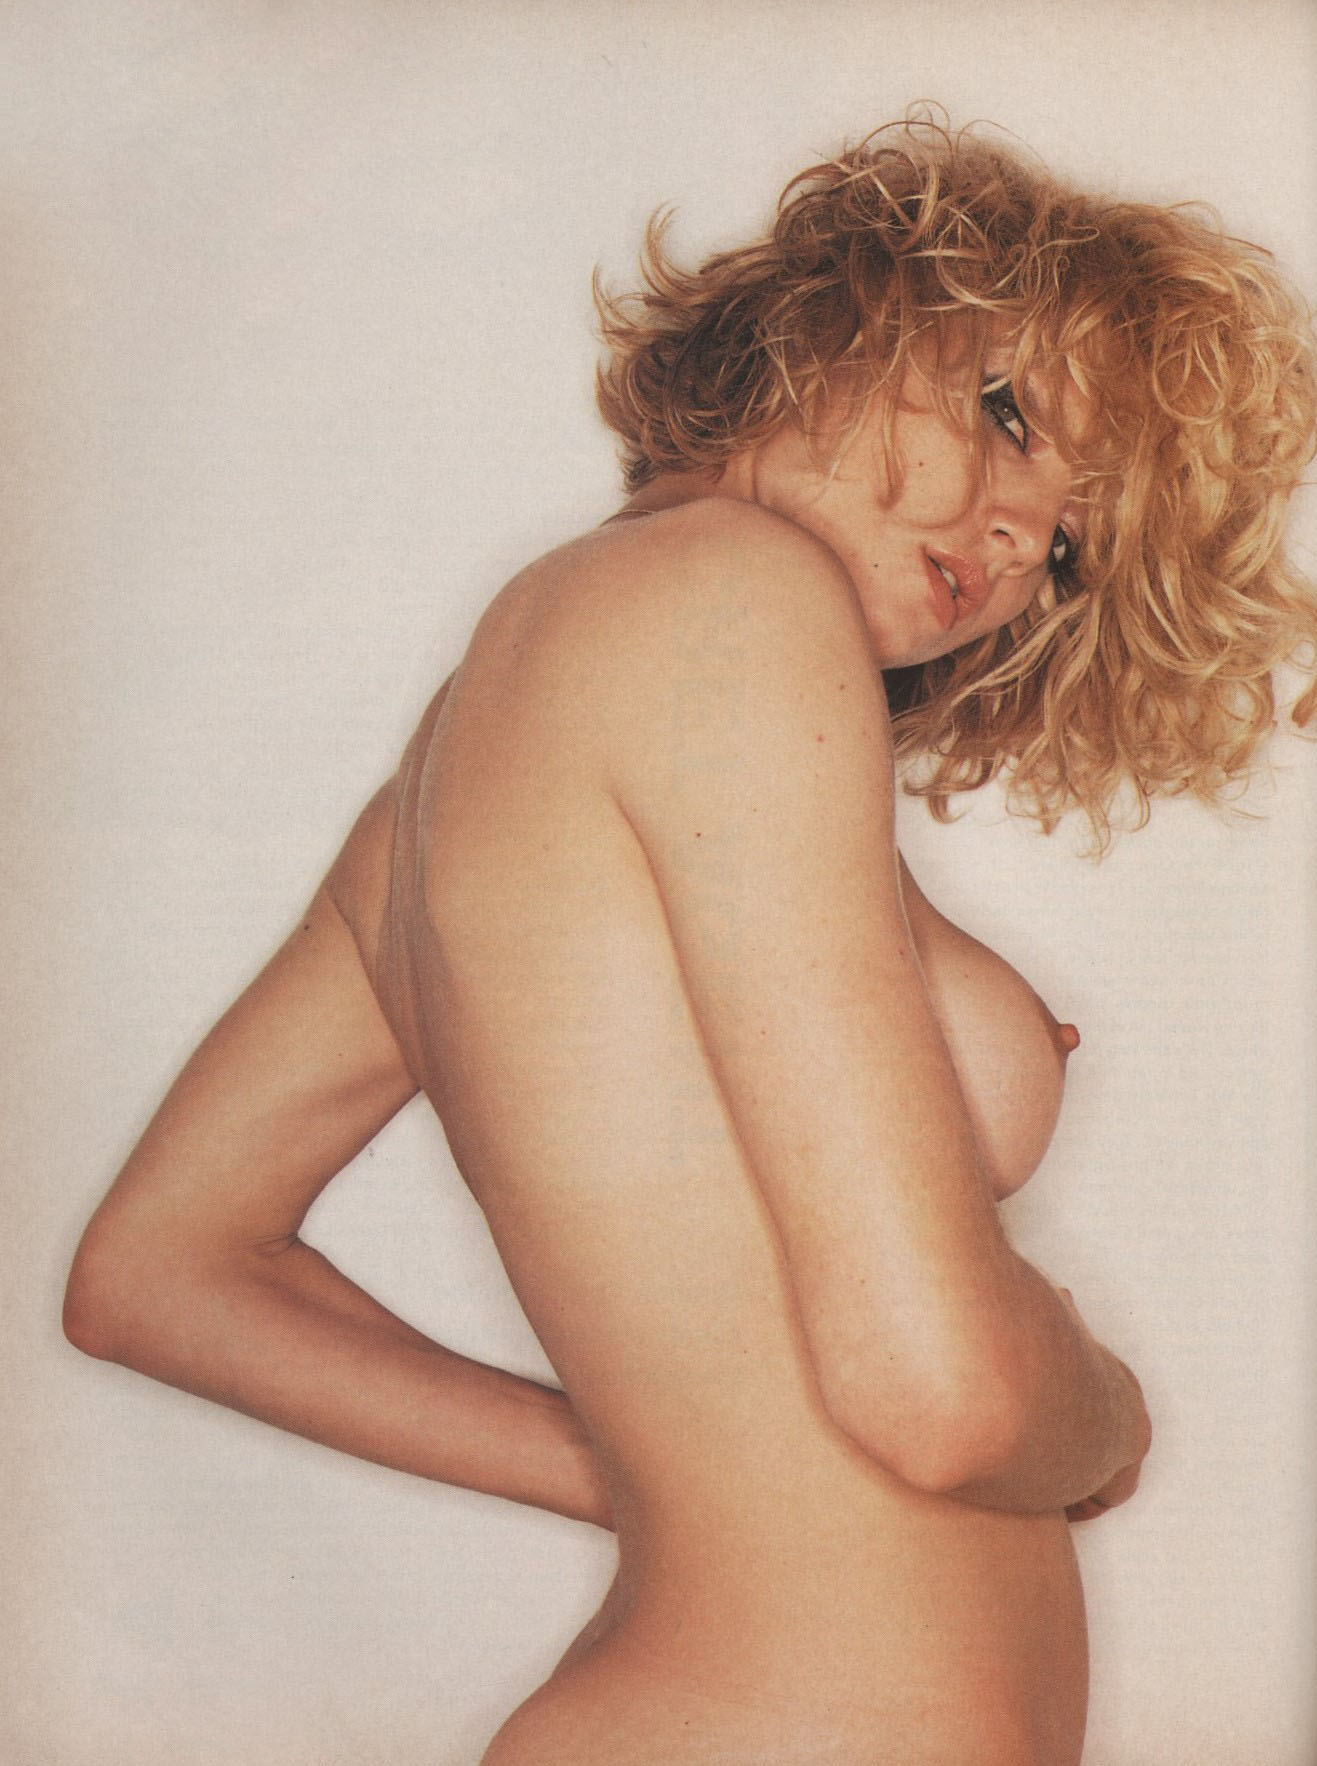 THE BUMP DEAL RACHEL WILLIAMS PHOTOGRAPHY JUERGEN TELLER STYLING VENETIA SCOTT THE FACE VOLUME 2 NUMBER 83 AUGUST 1995